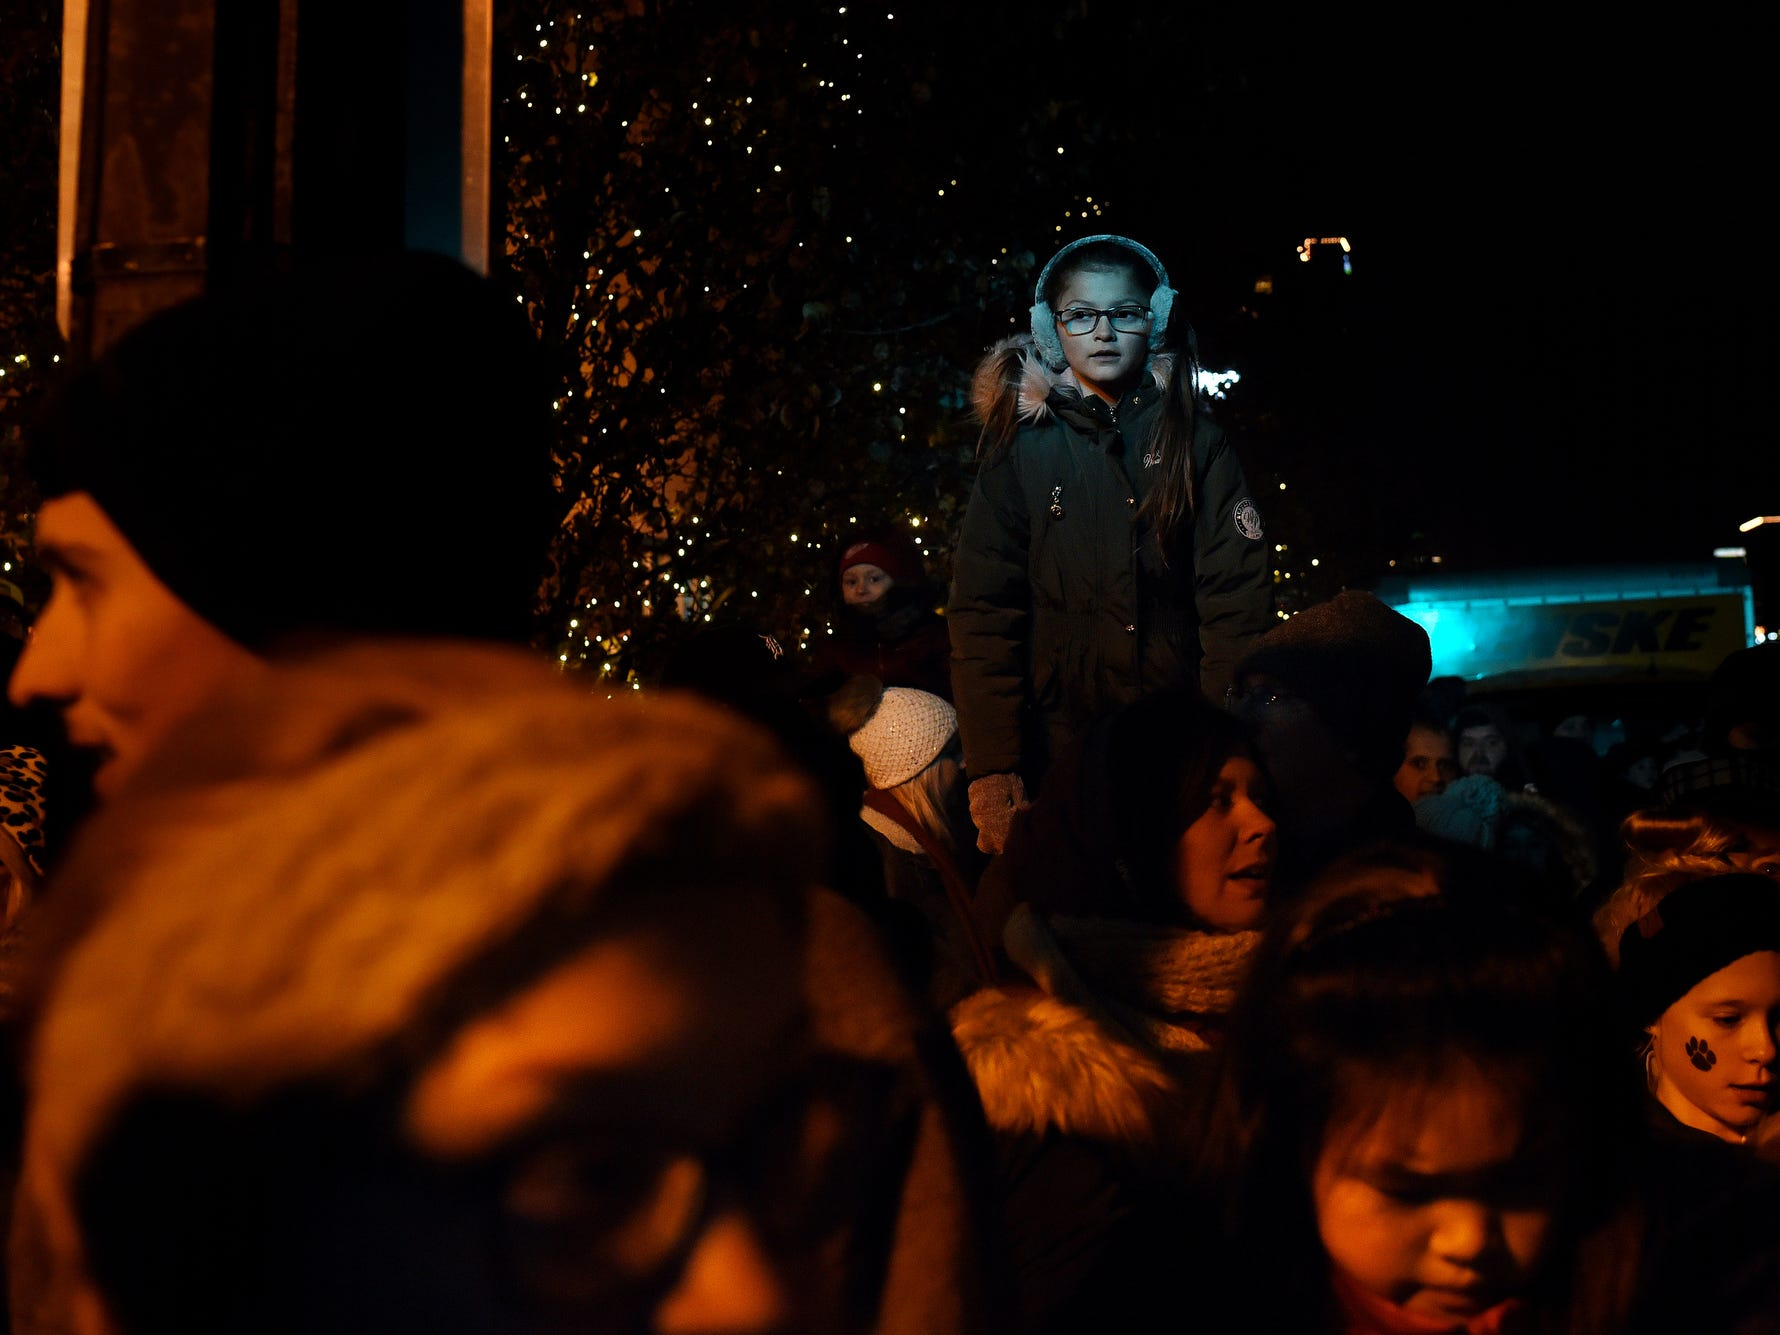 People gather in preparation for the lighting of the state tree outside the Michigan State Capitol during Silver Bells in the City on Friday, Nov. 16, 2018, in downtown Lansing.